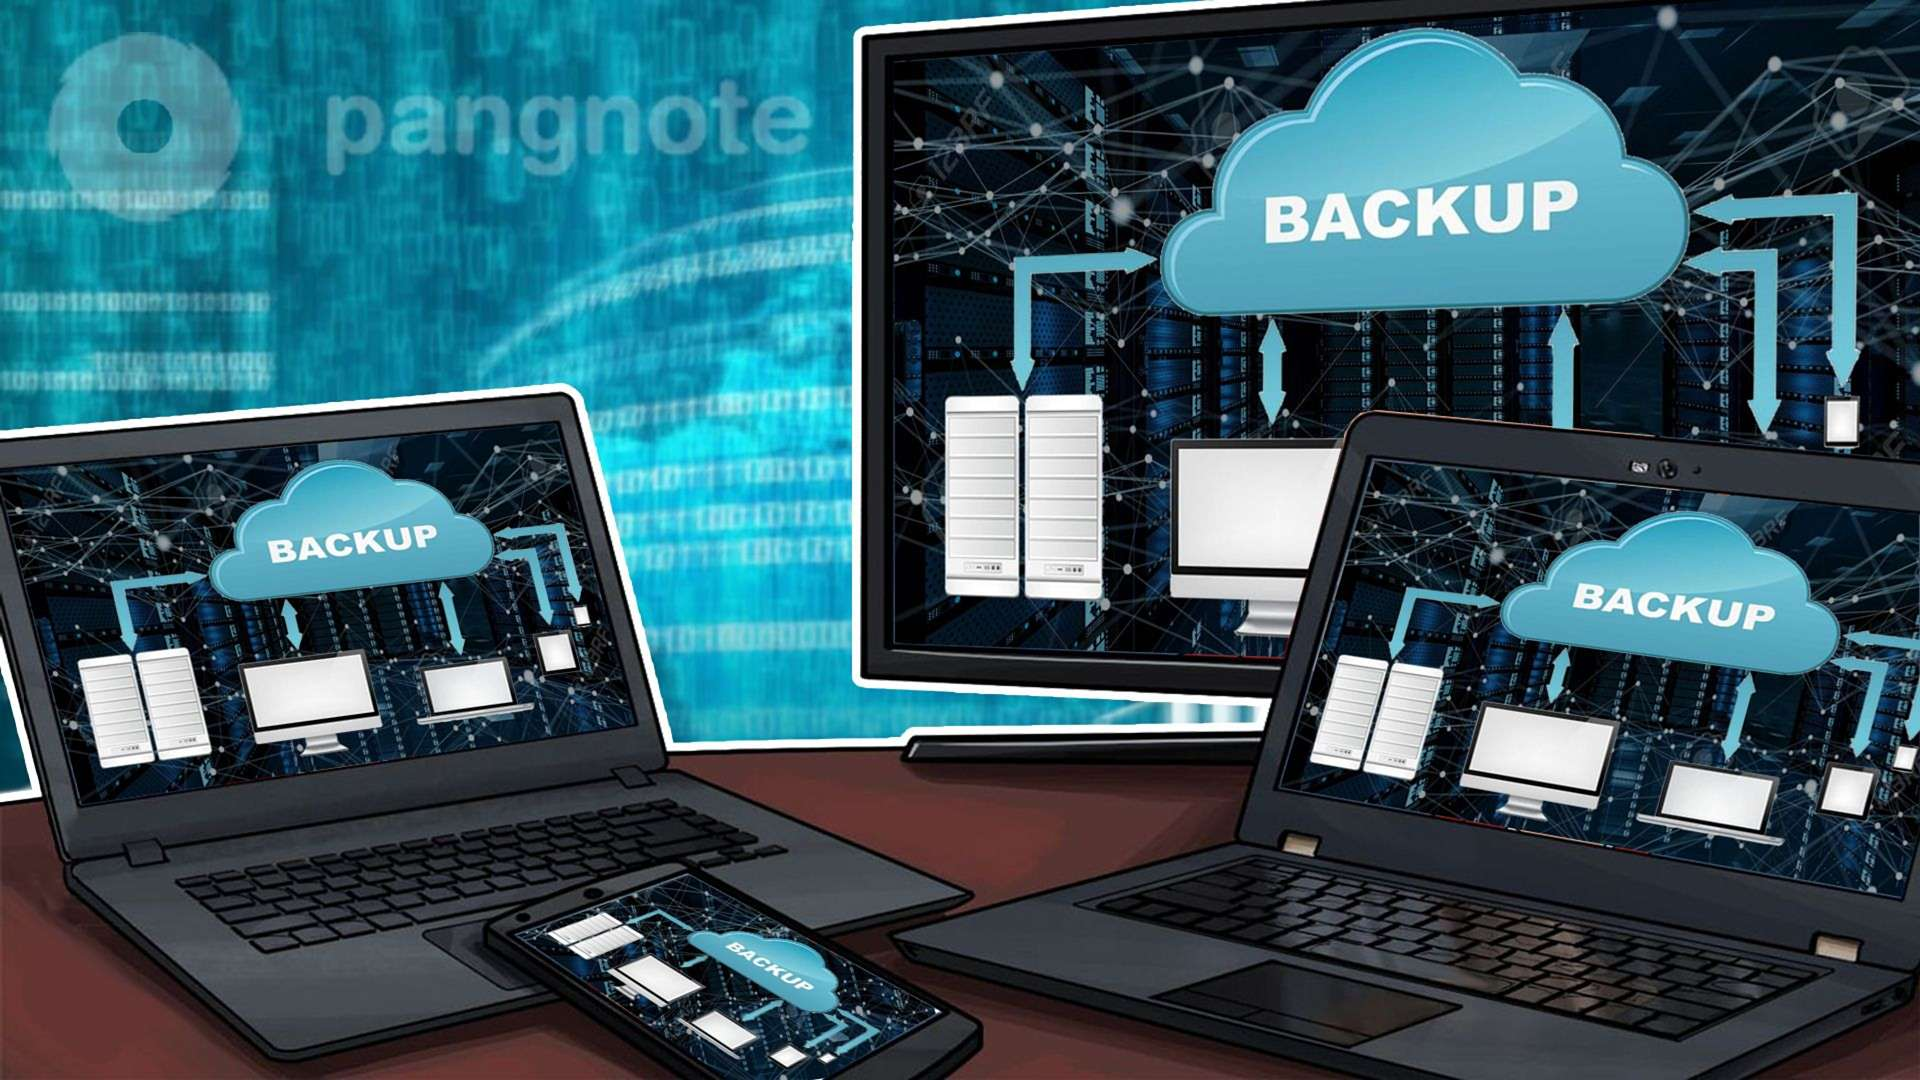 Backup technologies that are used on the server